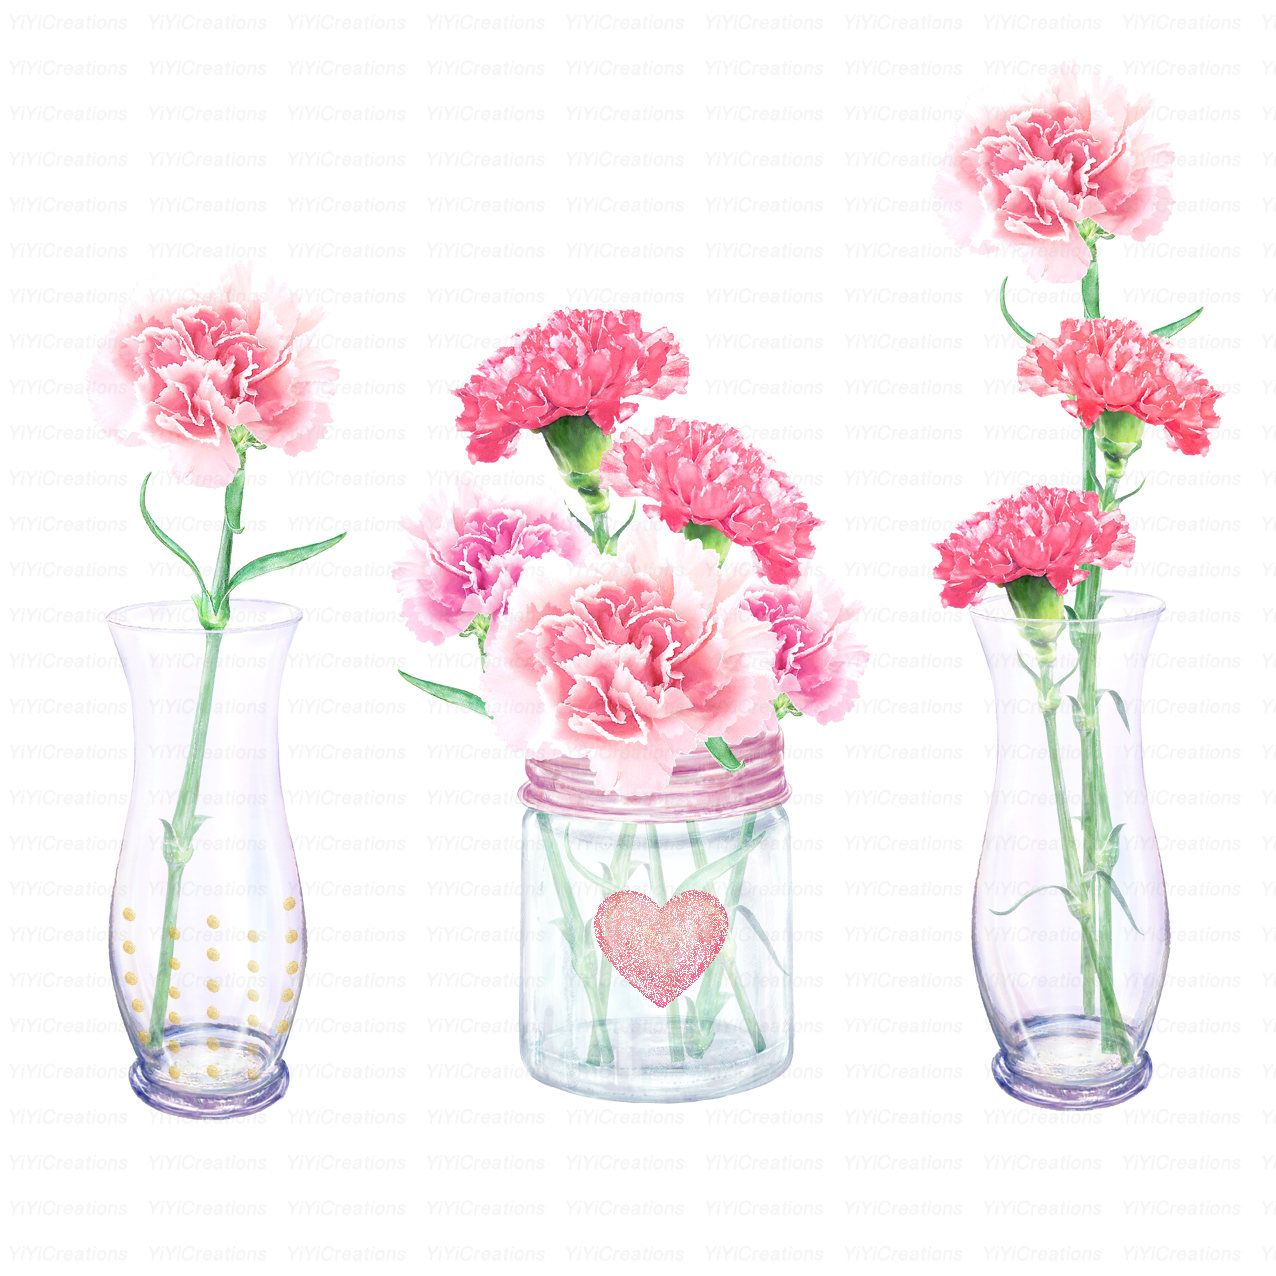 Watercolor Flower Clipart Carnations In Vase Clipart For Invitation Glitter Ribbon Bow Flower Bouquet Spring Wedding Invitation From Yiyicreations On Malen